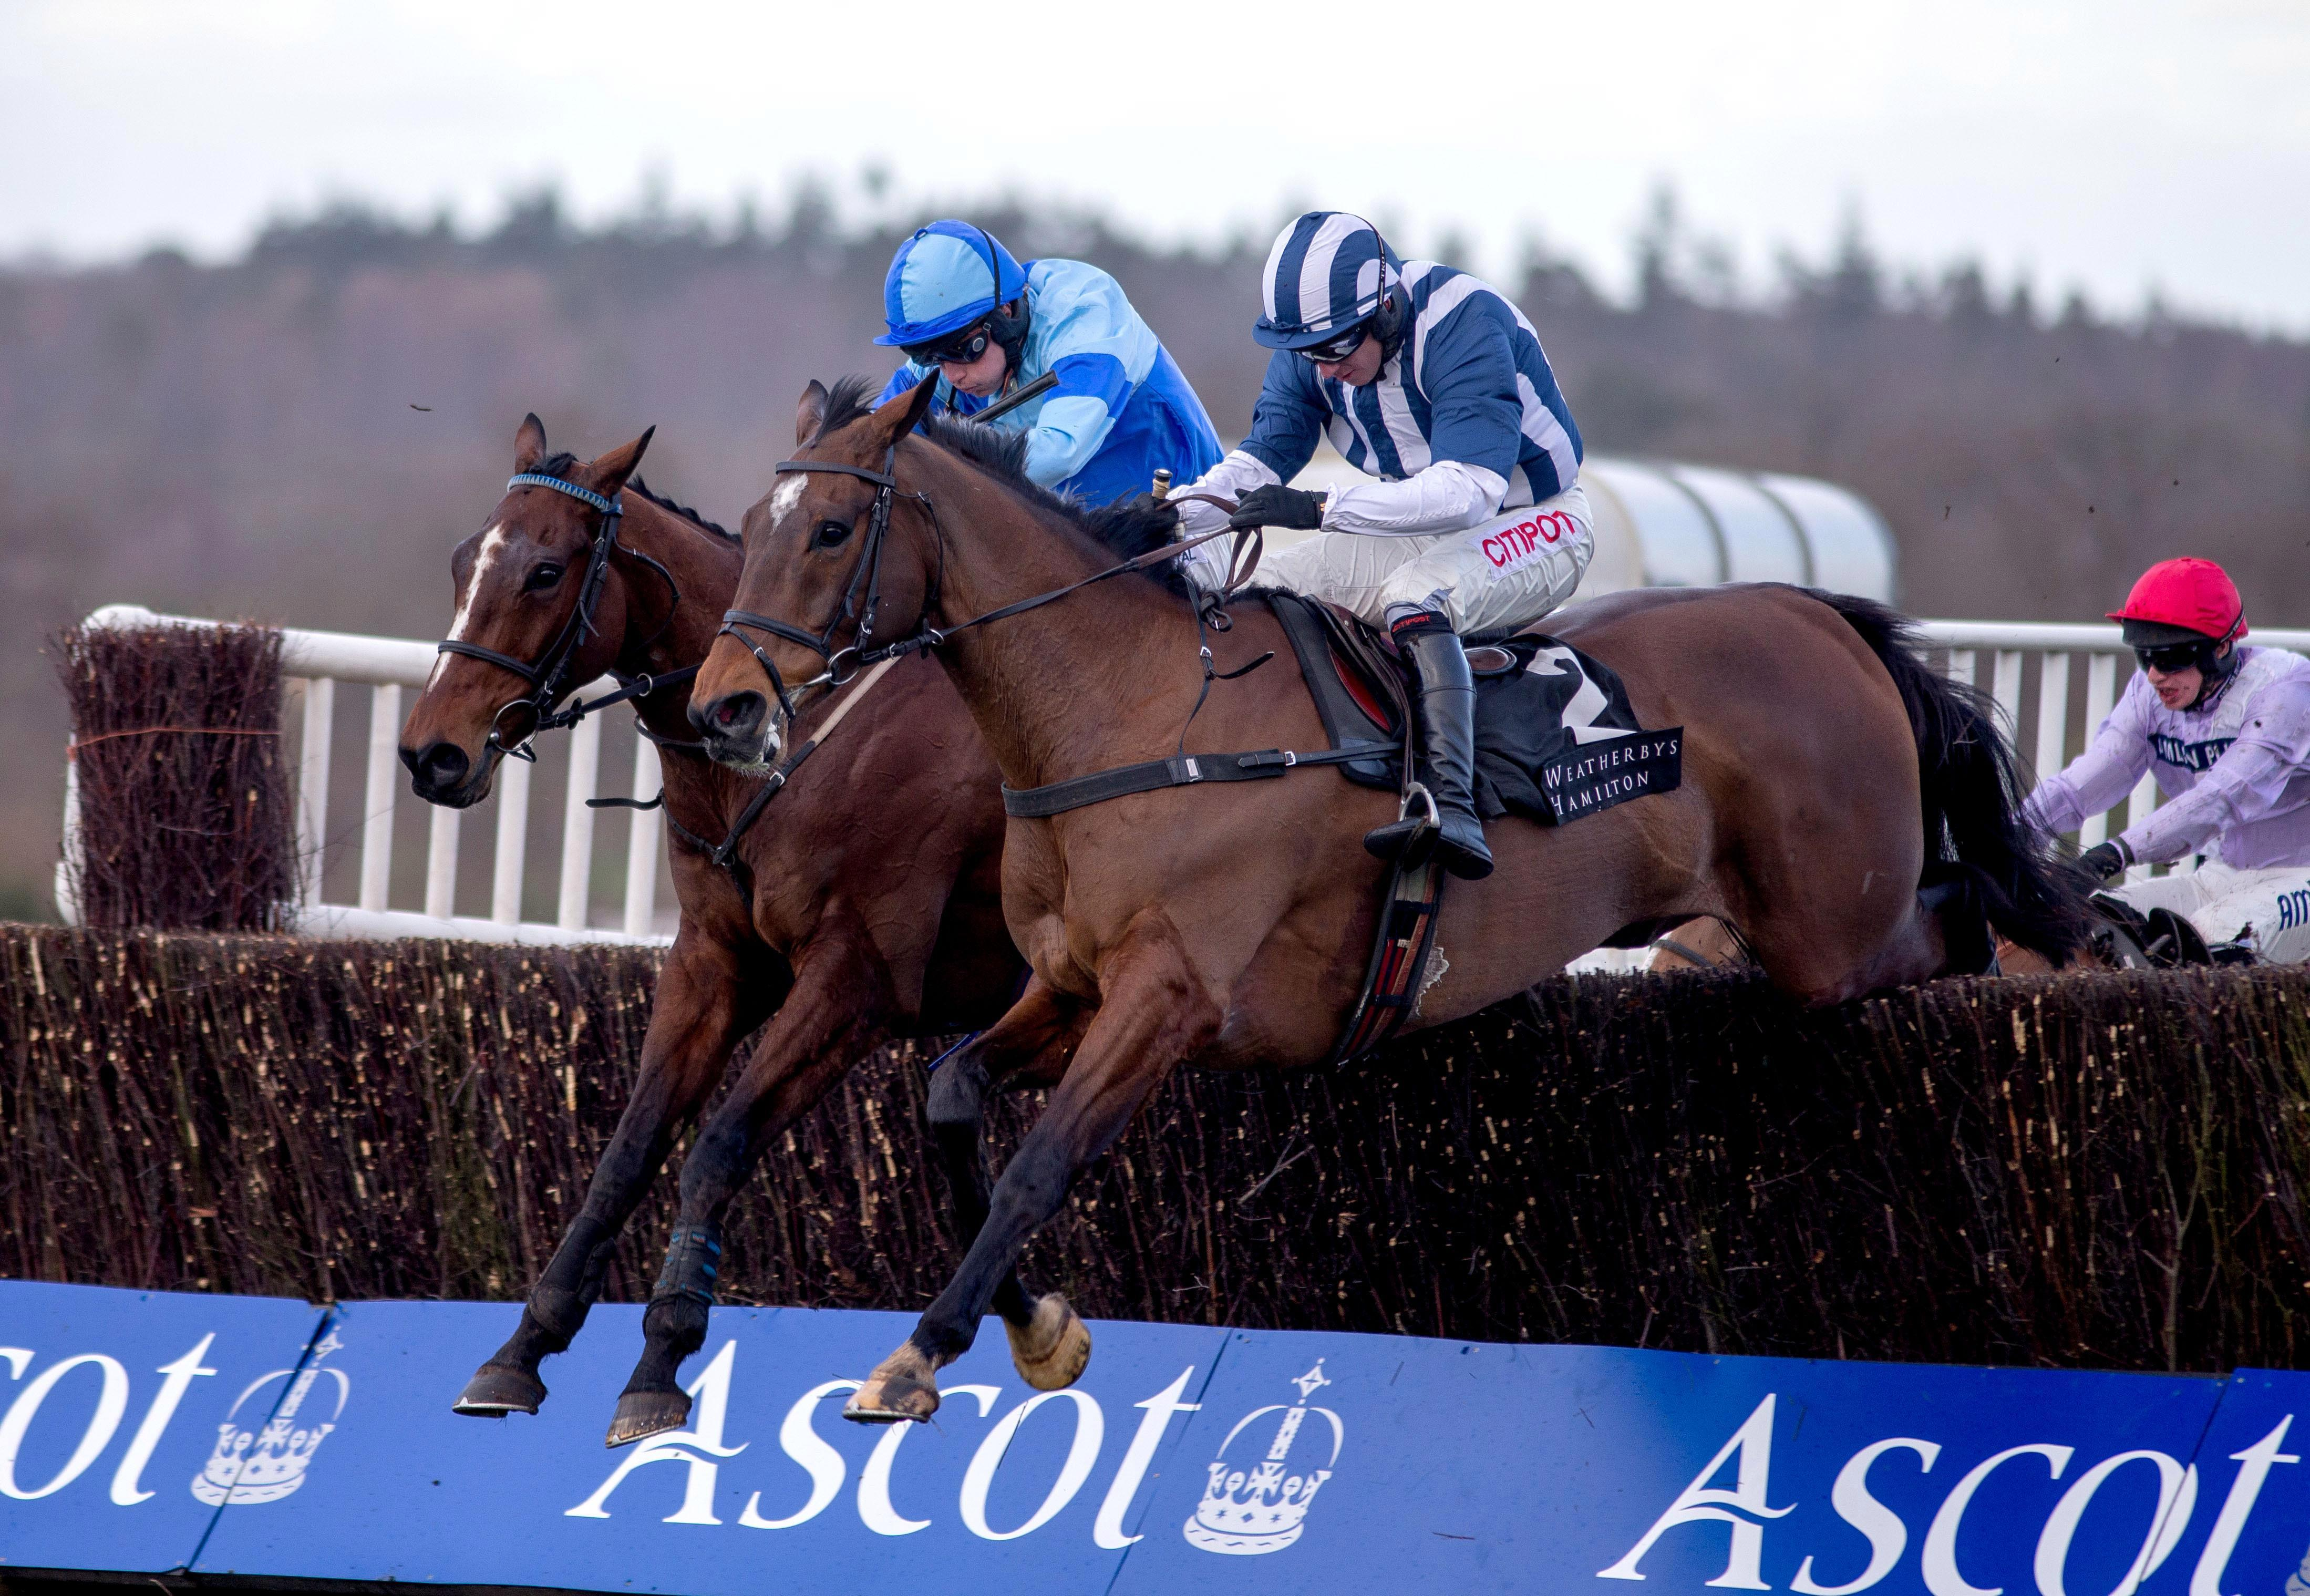 Templegate S Horse Racing Tips Sodexo Gold Cup Day At Ascot Top Betting Preview For Today S Itv Racing Wstale Com